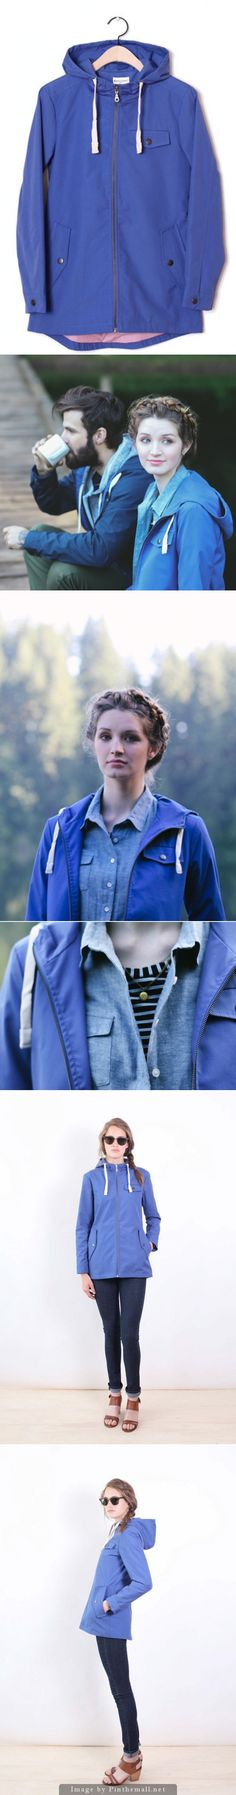 Warbler hooded zip-up jacket in Blue - by Bridge & Burn of Portland, OR. Made of a water resistant cotton/poly blend. Fall will be here sooner than you think; why not look natty even when you're soaked? #nattygal #bridgeandburn #spon